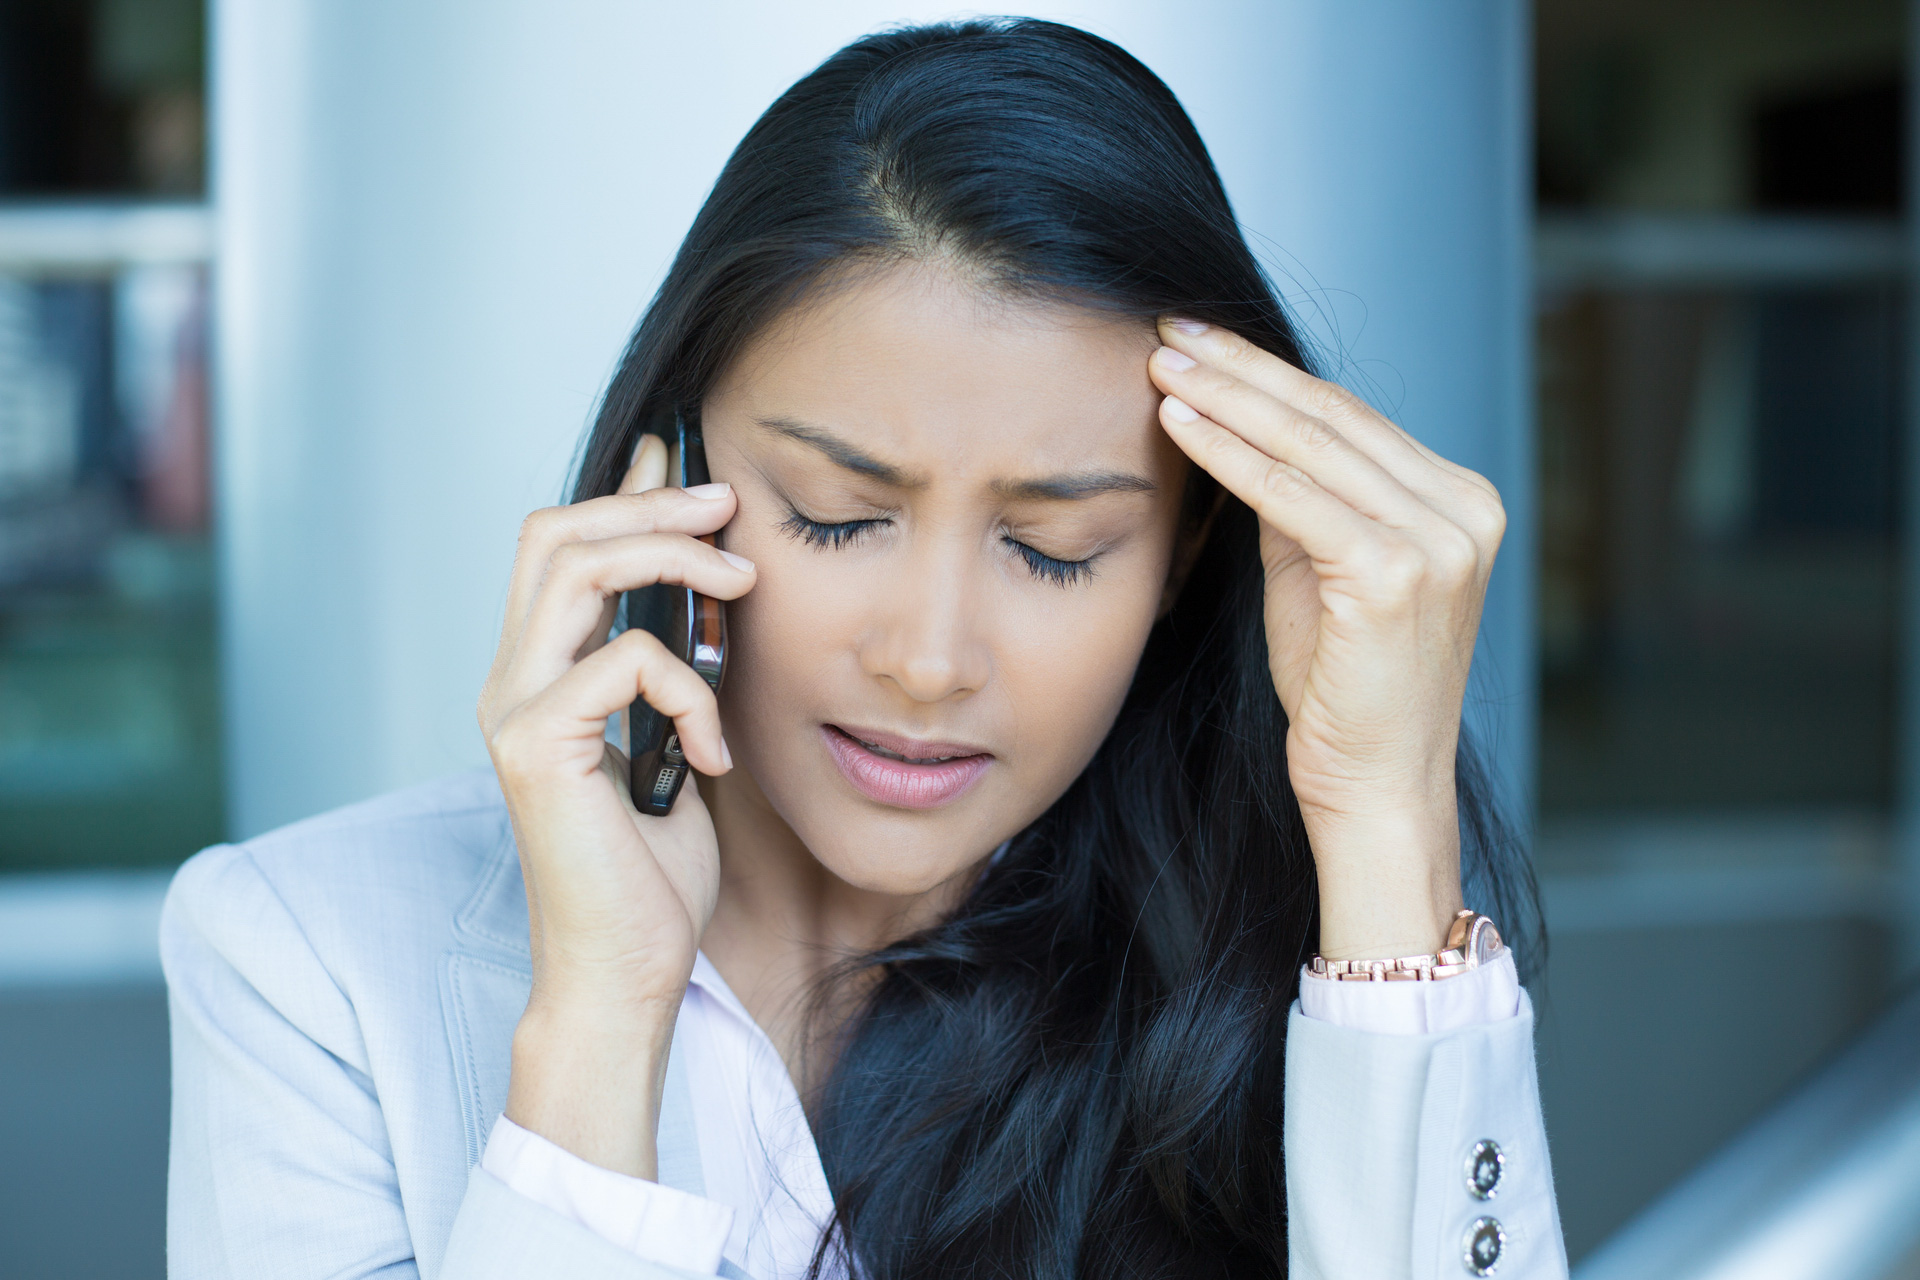 Employee Assistance Programs can be Underutilized